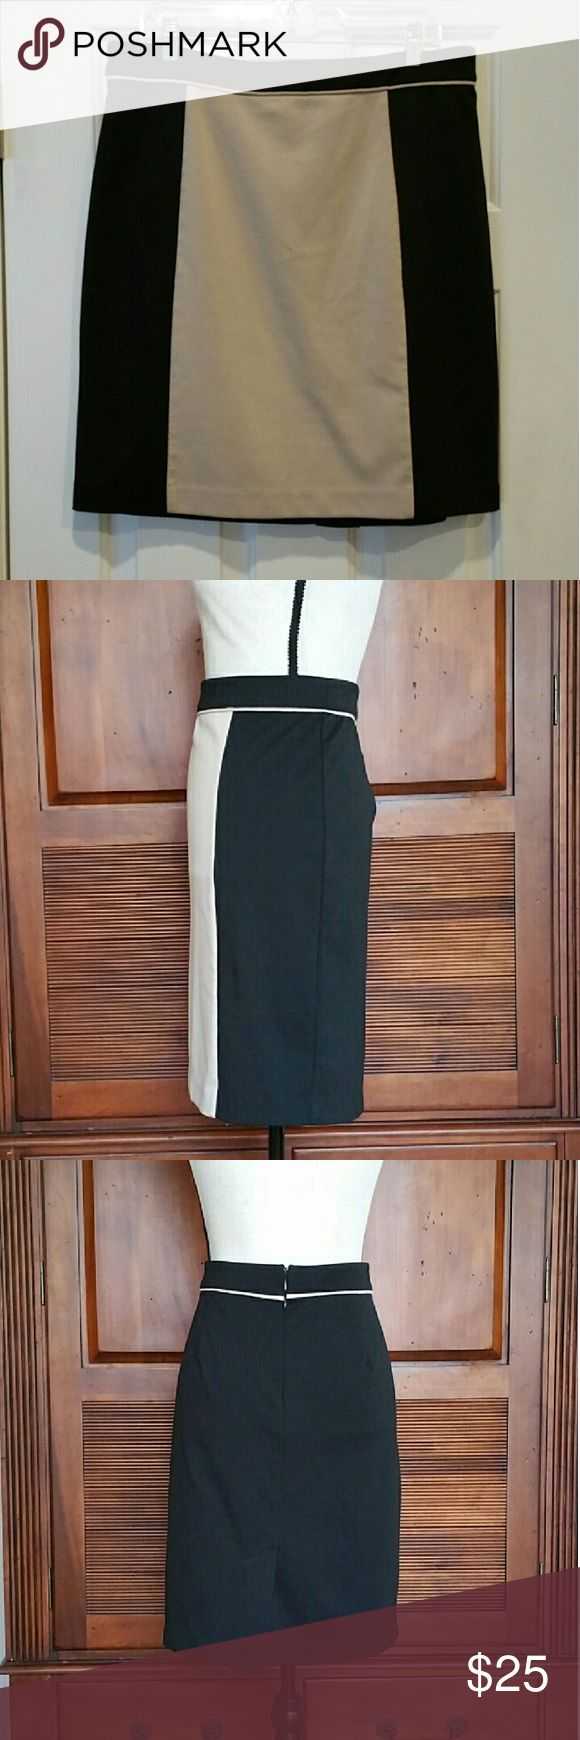 "Dana Buchanan Color Block Skirt Dana Buchanan Color Block pencil Skirt in black and tan *Pic 1 hanging shows actual porportion color block fit at size 14 ( mannequin is sz 6/8 ) medium weight poly rayon spandex blend zipper back with eye hook tan piping accent front to back around waistline length measures aprox 23"" EUC Dana Buchman Skirts Pencil"